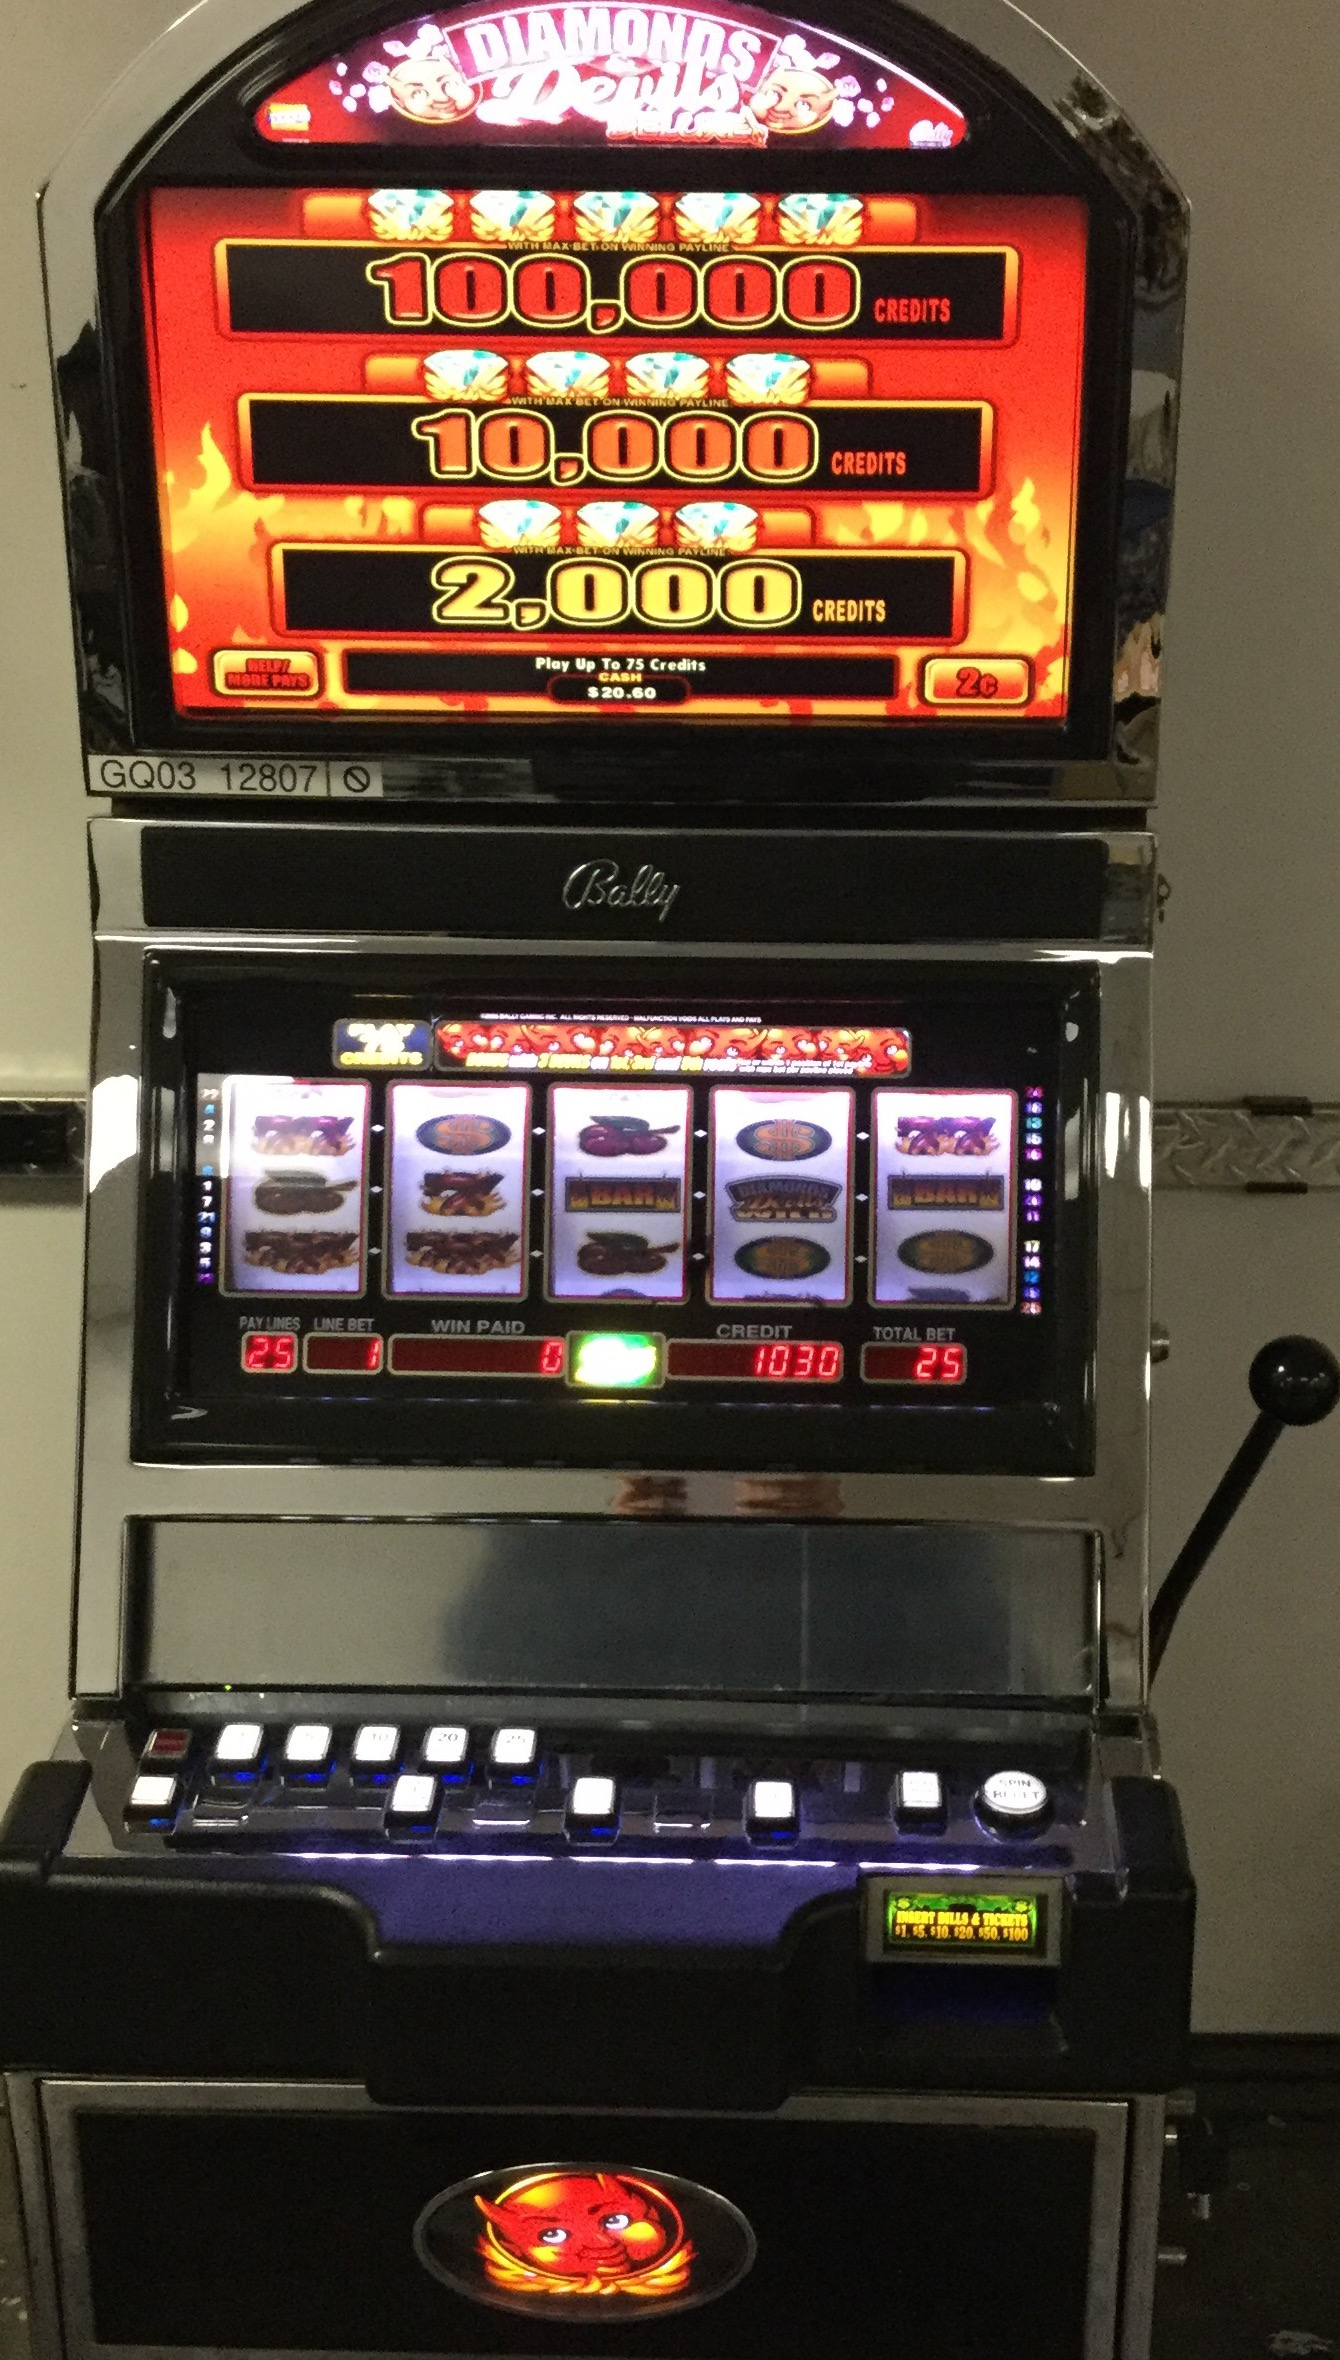 Devils And Diamonds Slot Machine